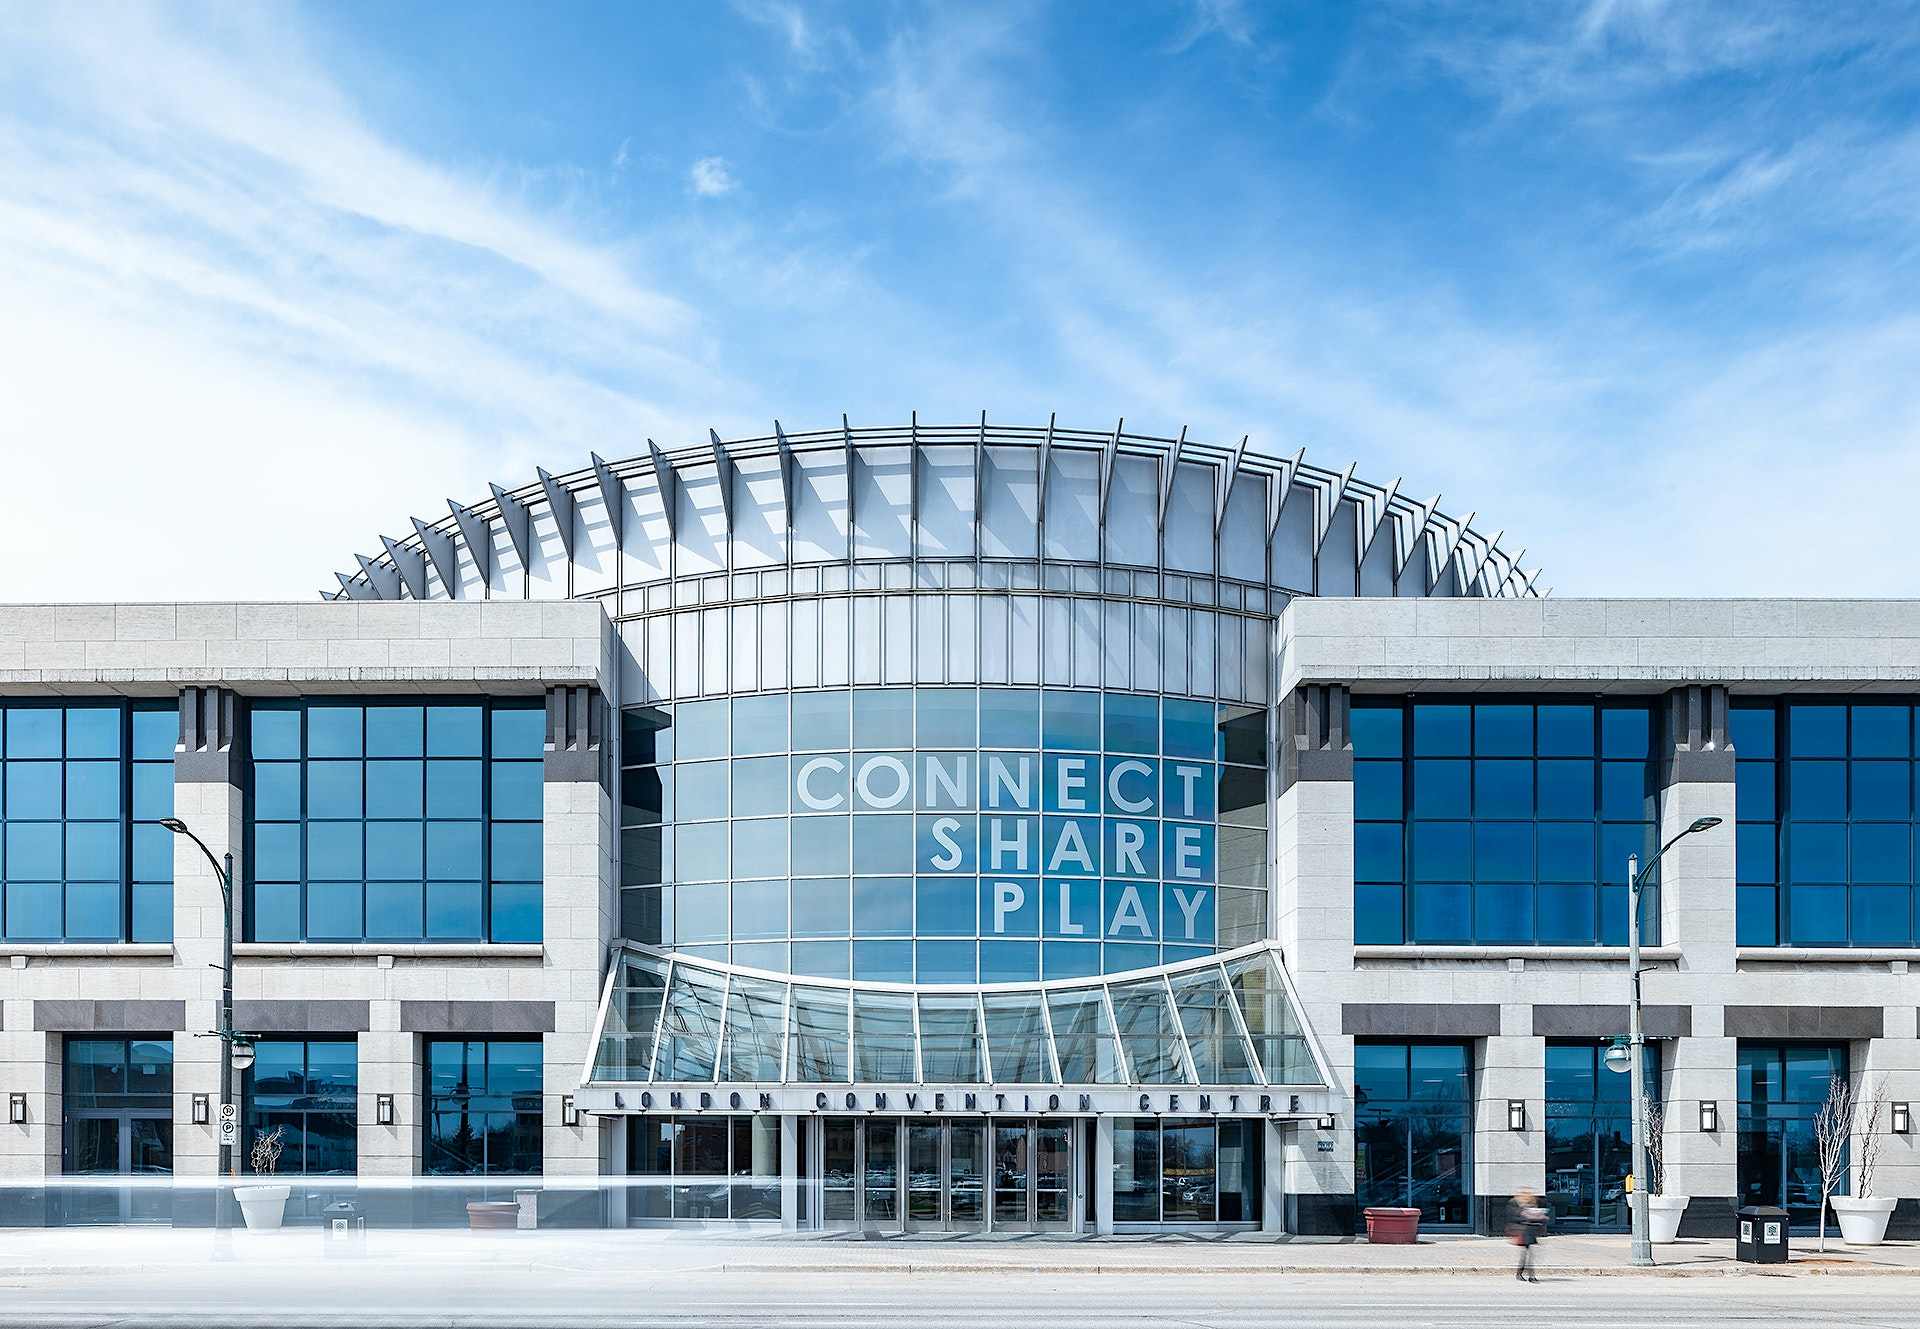 Photo of London Convention Centre on York Street in Downtown London By Scott Webb Photography